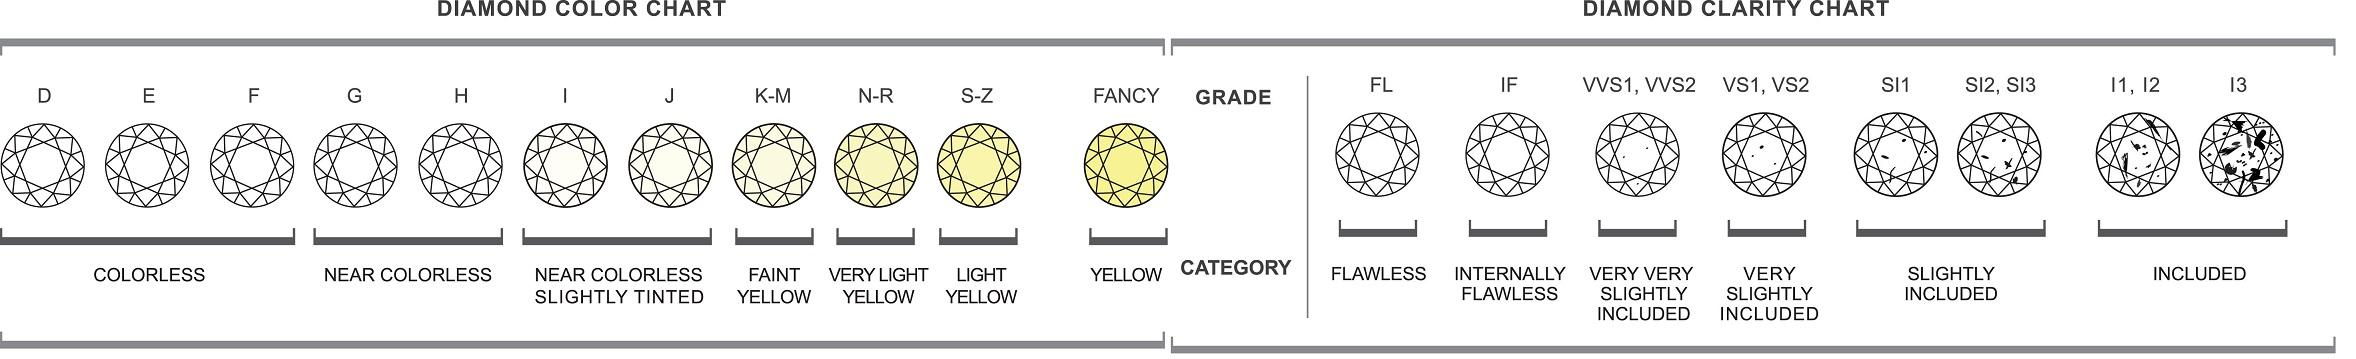 diamond chart color and clarity